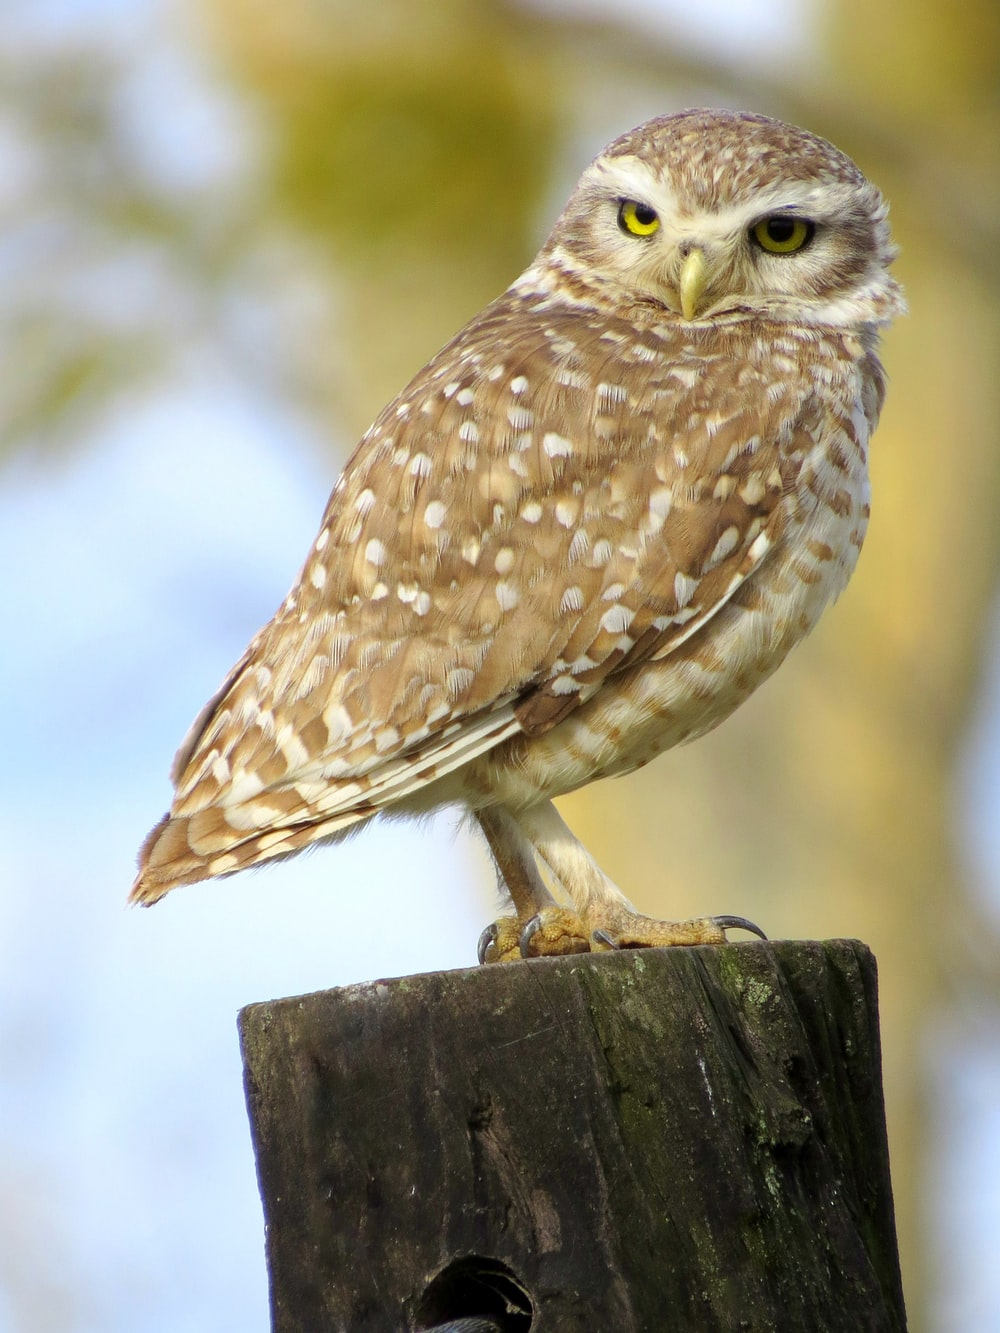 brown and white owl on brown wooden post during daytime